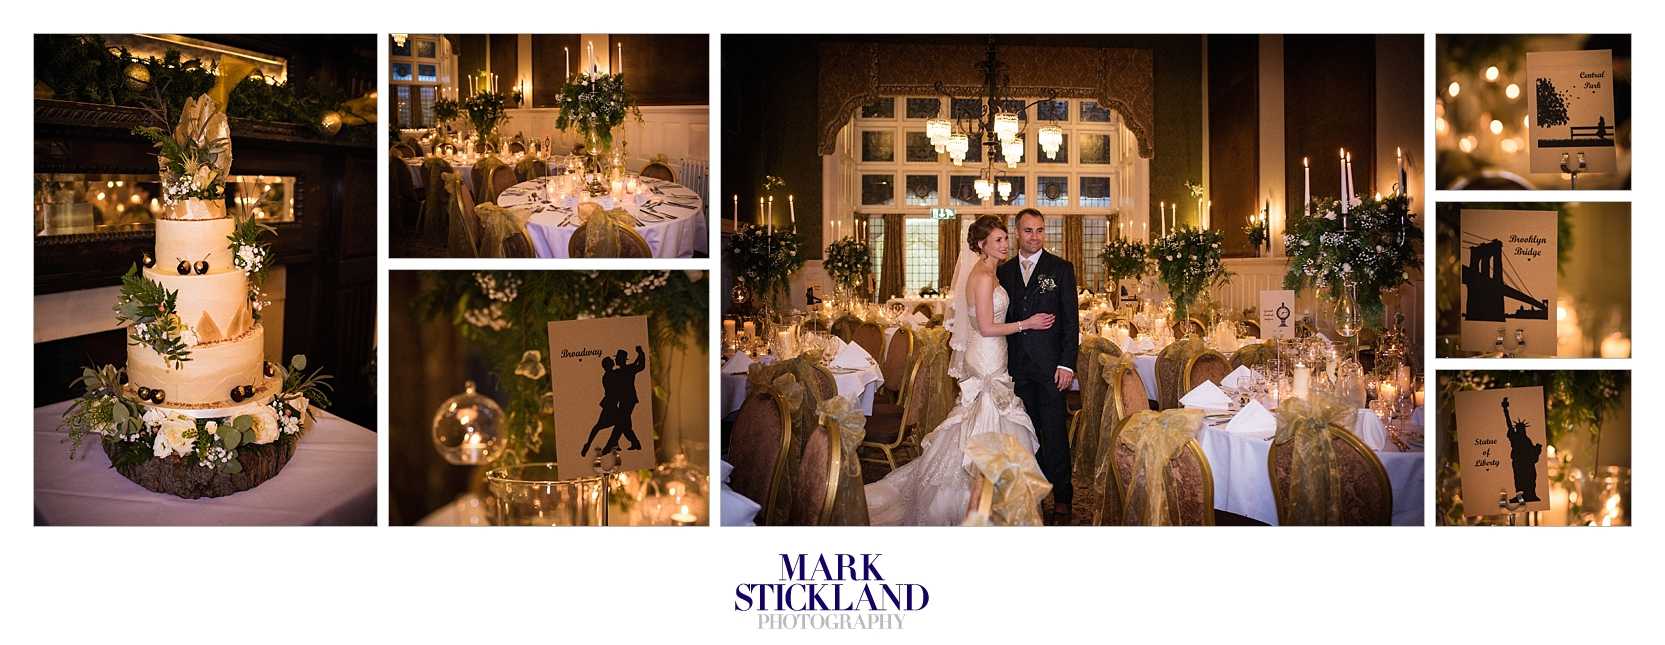 langtry manor hotel_wedding_bournemouth_dorset_mark stickland photography._0020